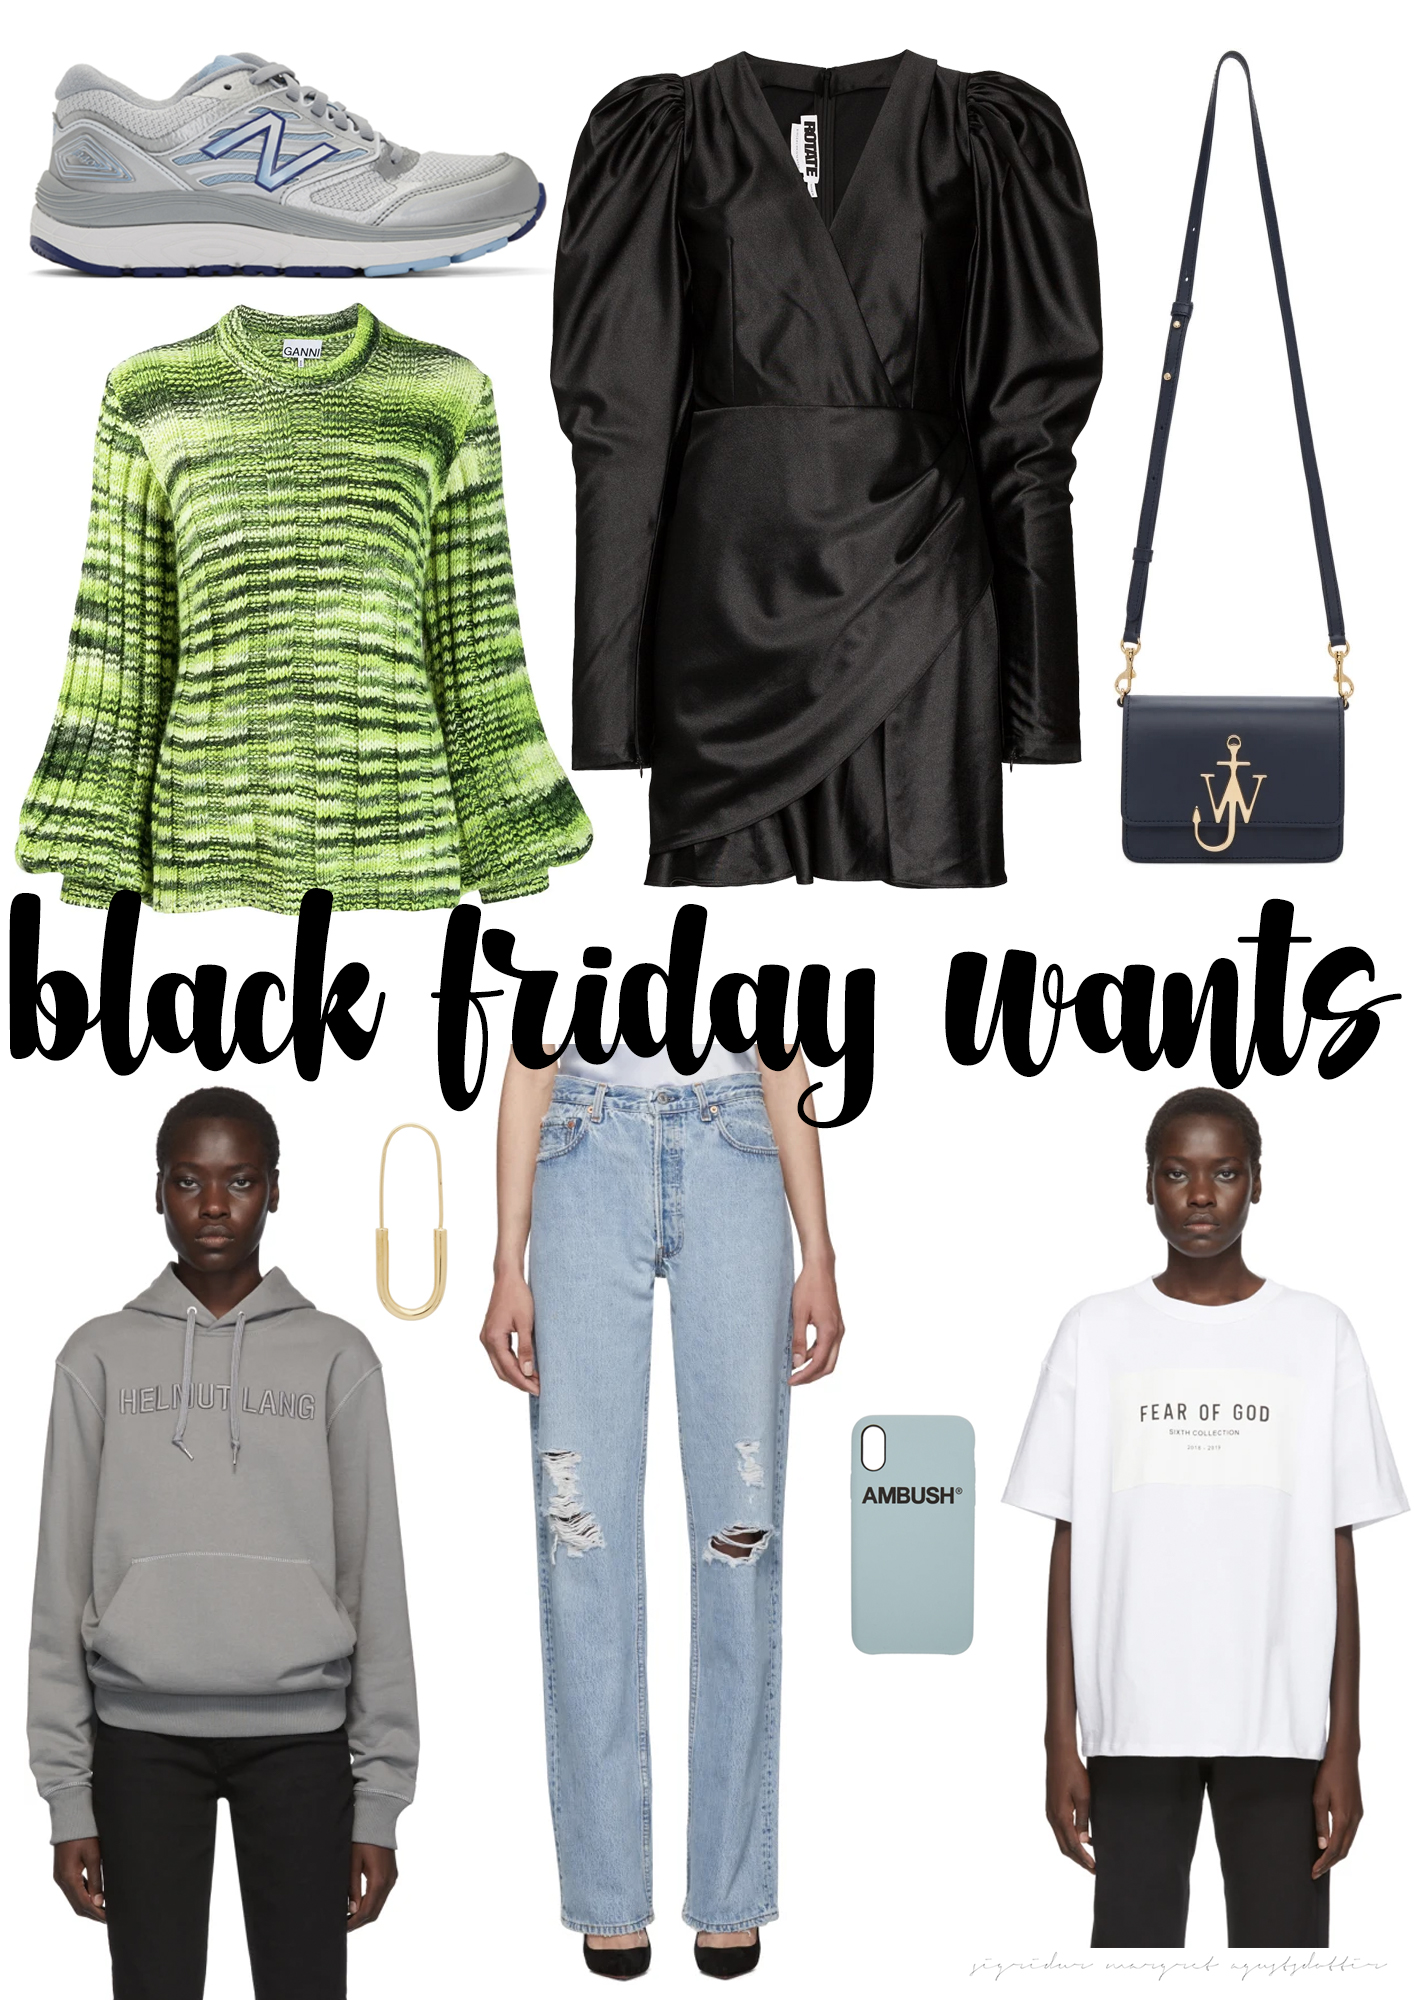 BLACK FRIDAY:WANTS